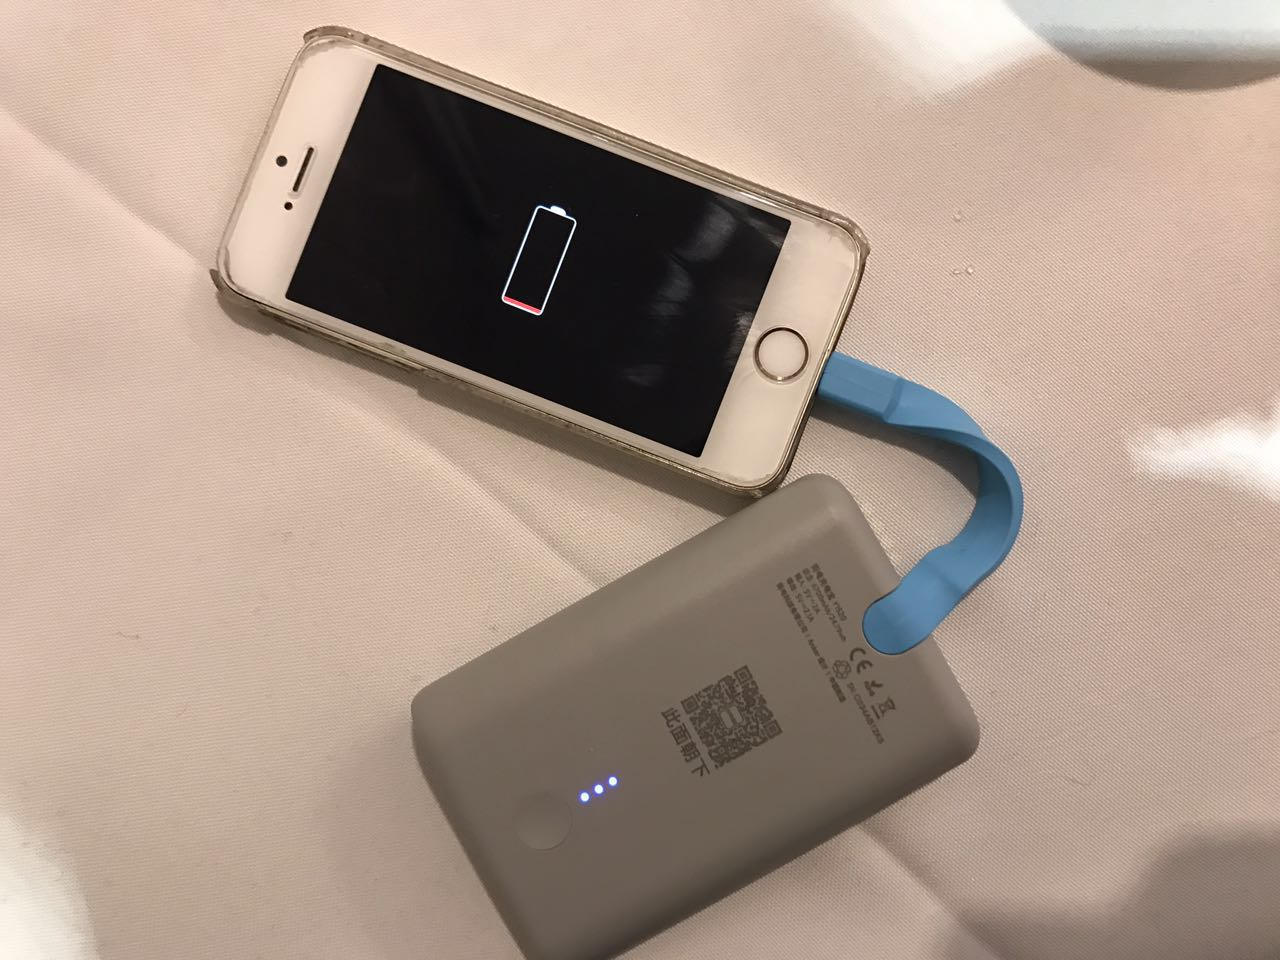 R Call it the Mobike of Your Phone Battery: Shared Chargers are Here to Power Your Device Anytime